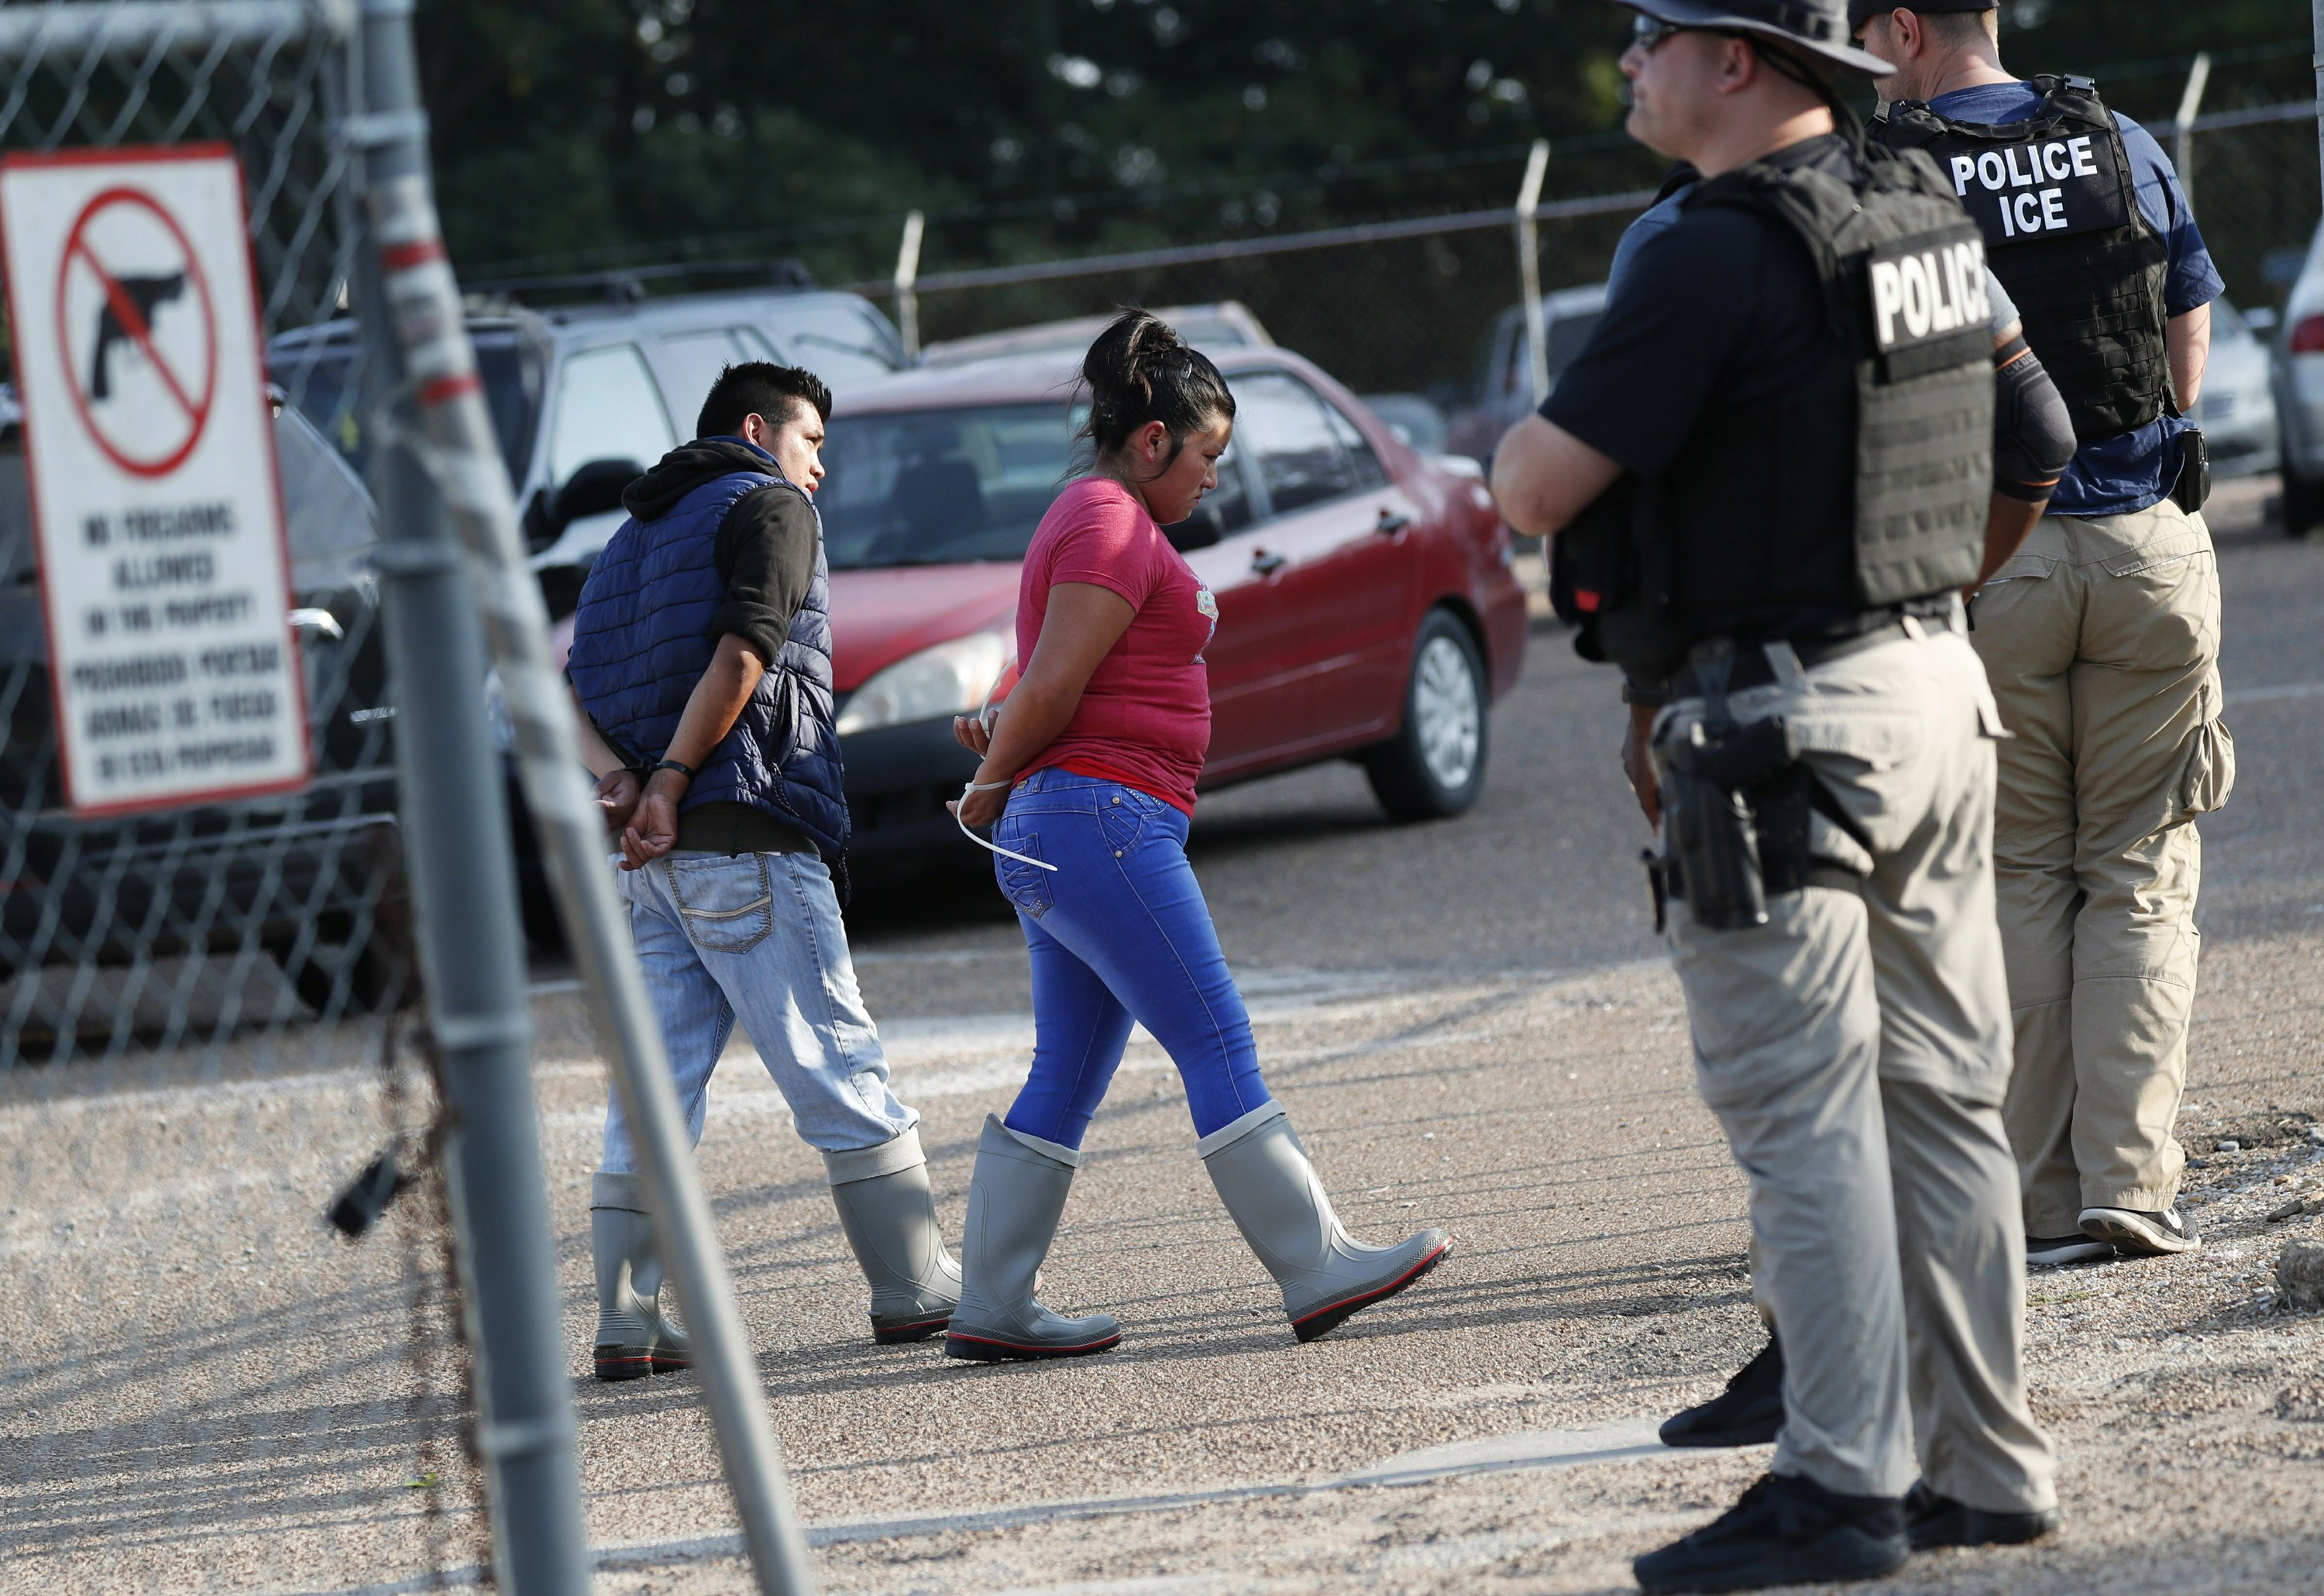 ICE raids food plants on day of Trump visit to grieving city